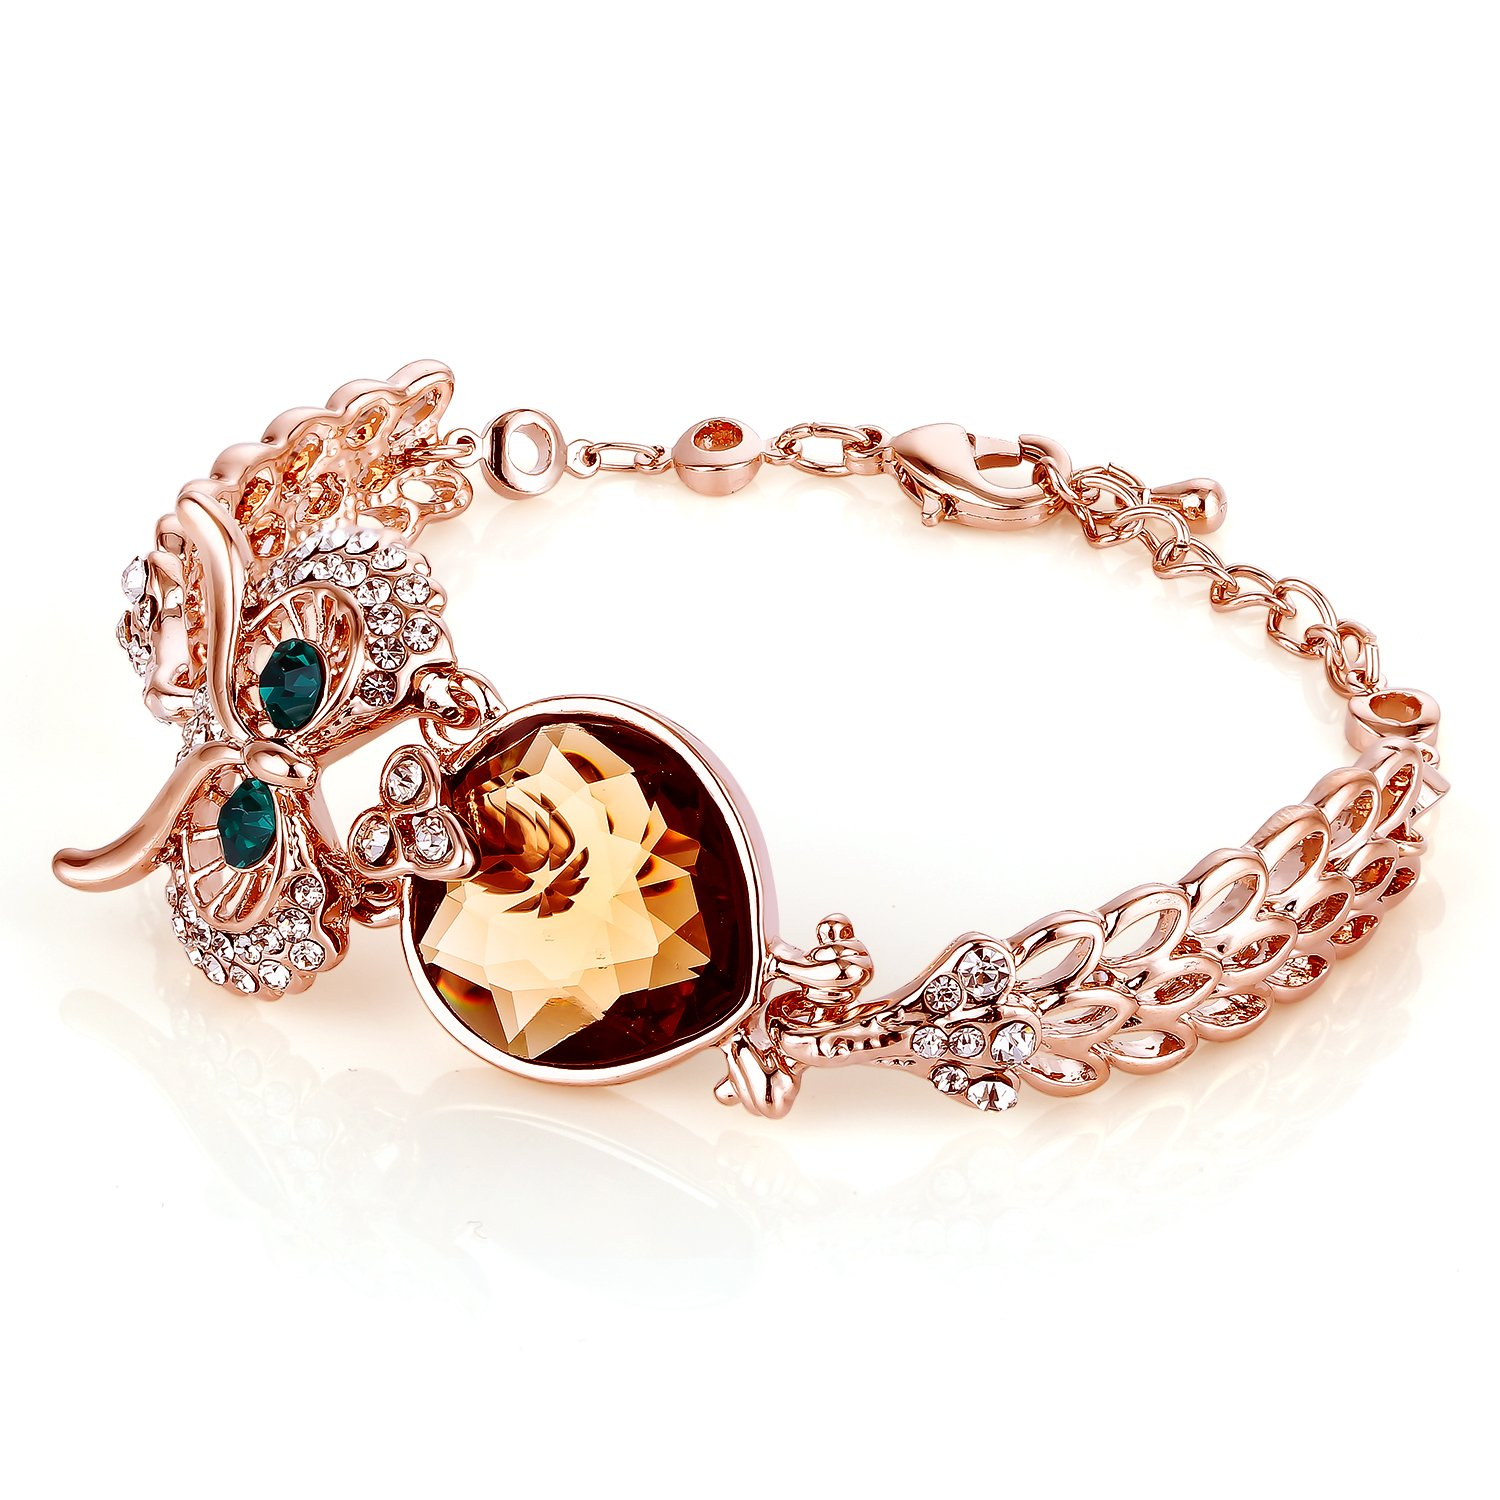 Menton Ezil Lucky Owl Bracelets With Turquoise Jewelry Charms Antique Golden Rhinestone Crystal for Womens Girls Gifts by Menton Ezil (Image #4)